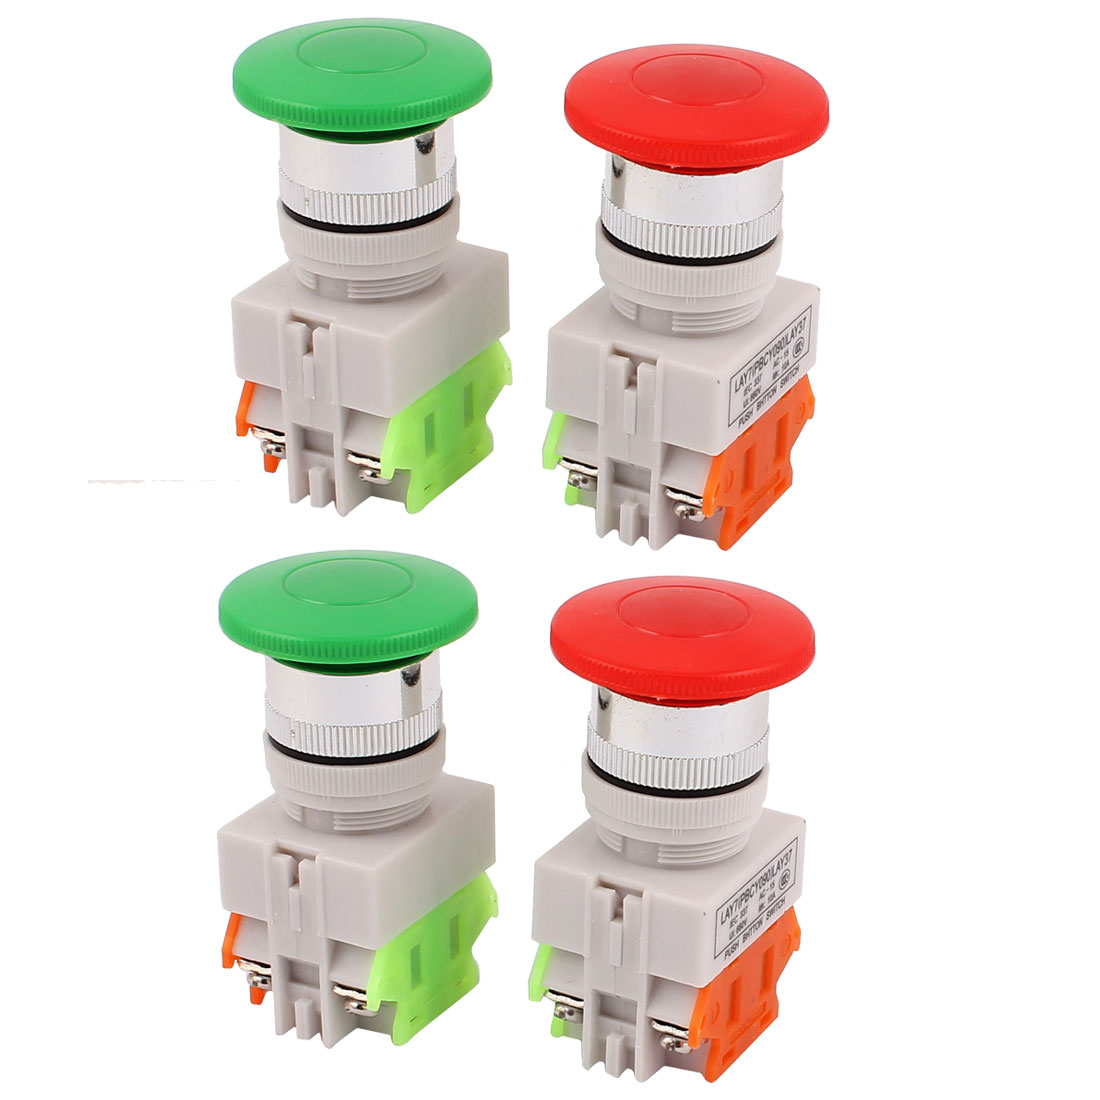 4PCS AC 600V 10A Emergency Stop Green Red Cap Mushroom Push Switch